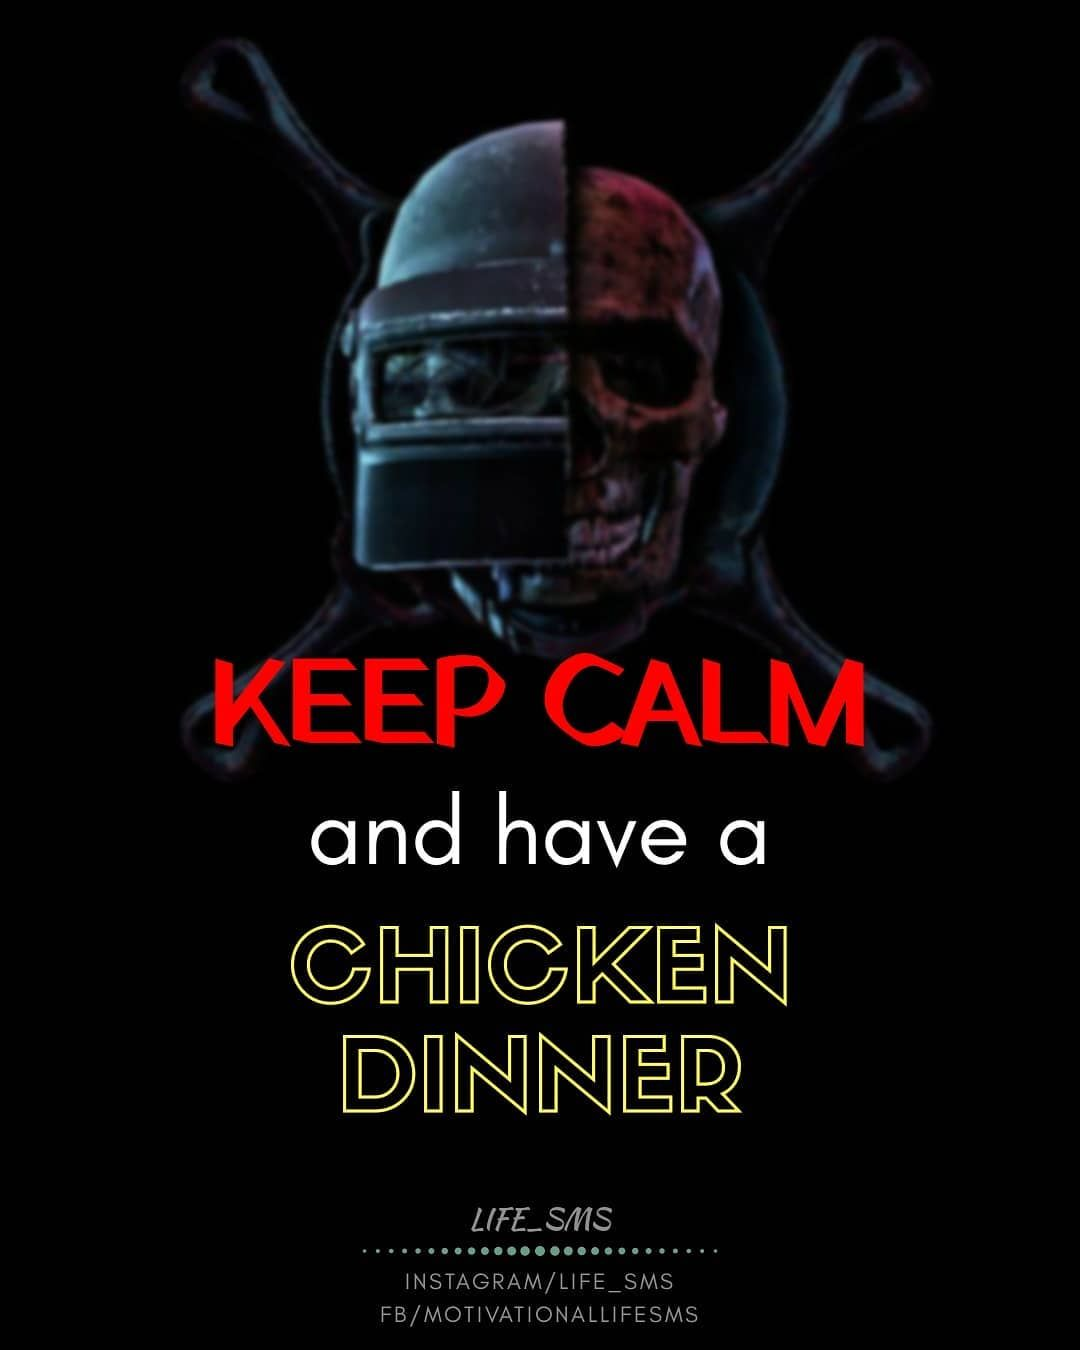 Comment below if you need more pubg quote  #pubgfunnymoments